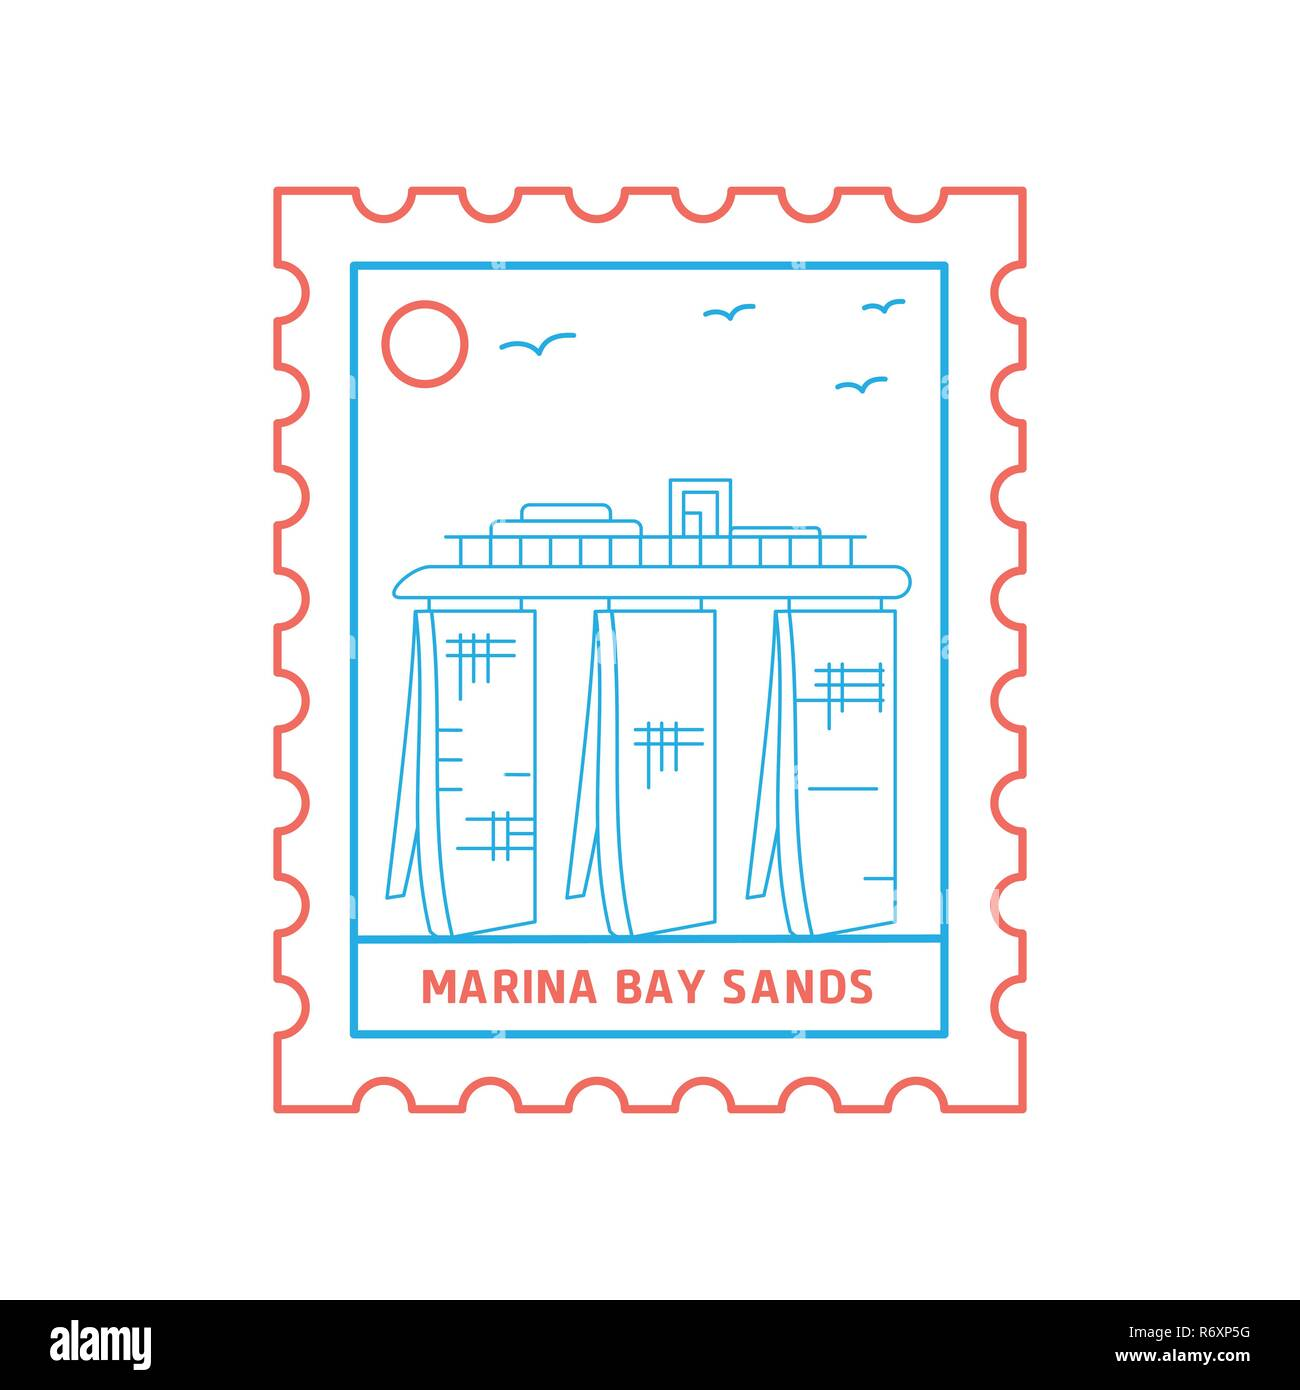 MARINA BAY SANDS postage stamp Blue and red Line Style, vector illustration - Stock Image